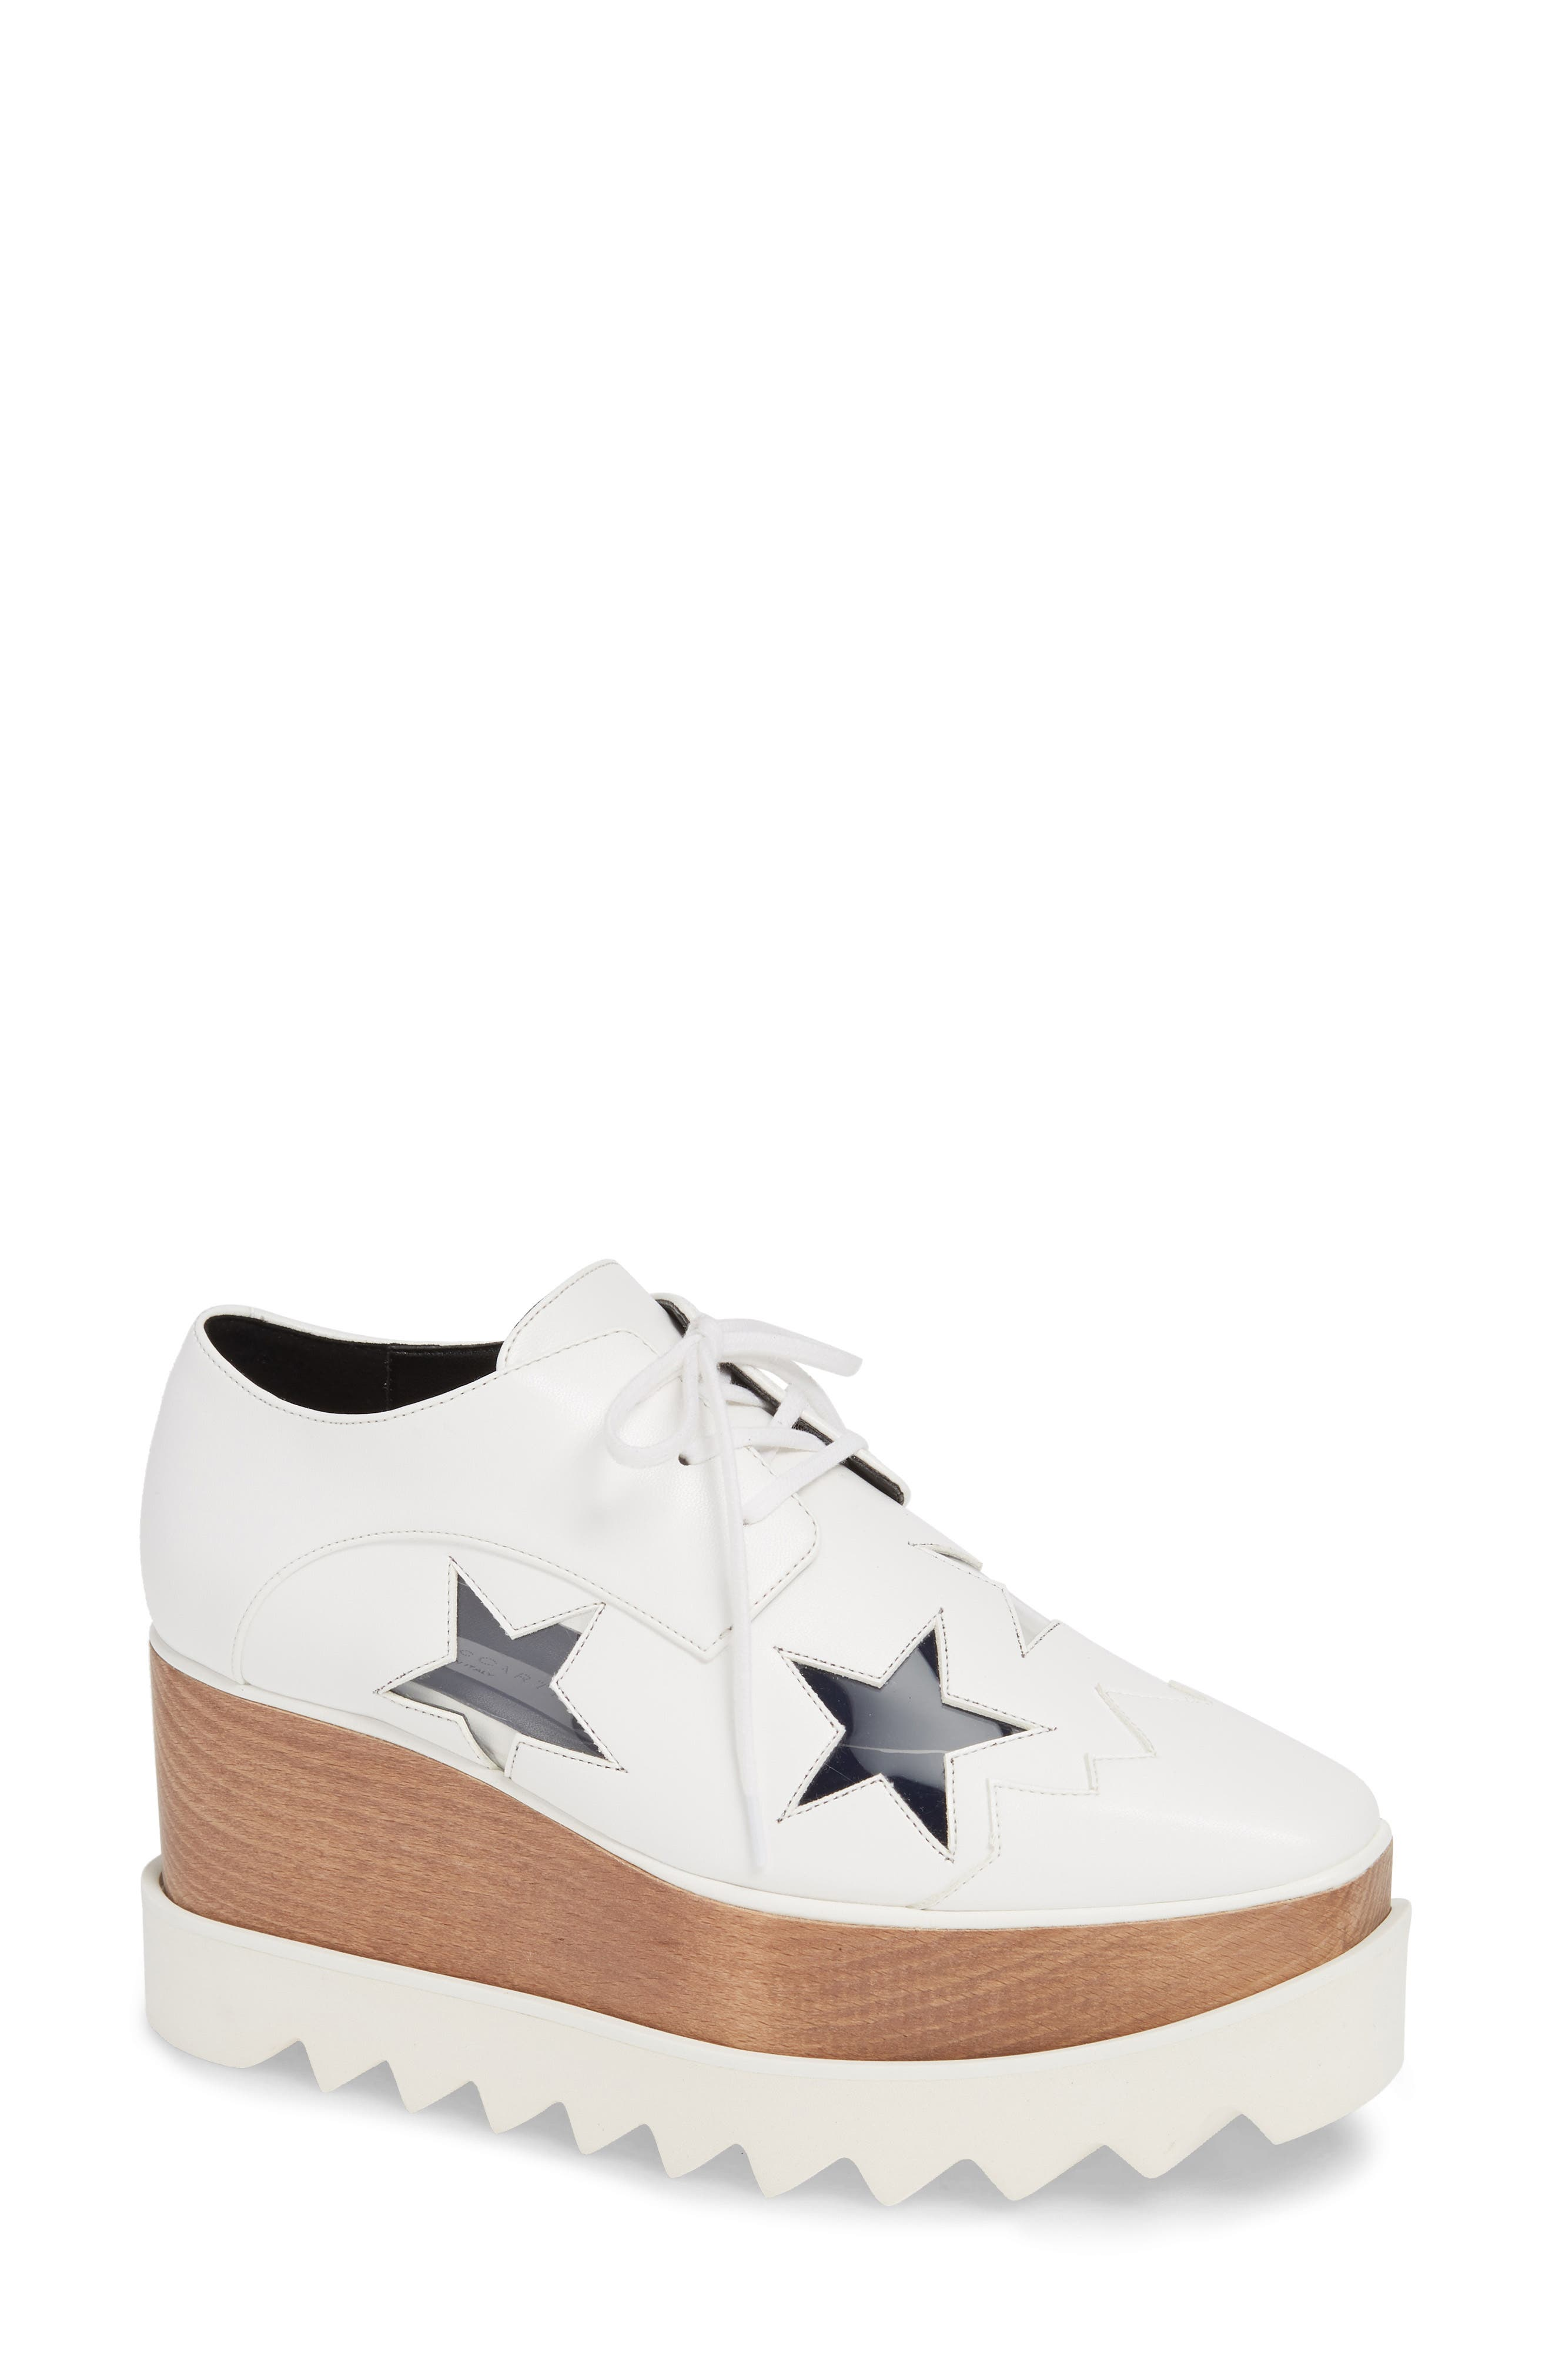 Stella Mccartney Elyse Clear Star Platform Oxford